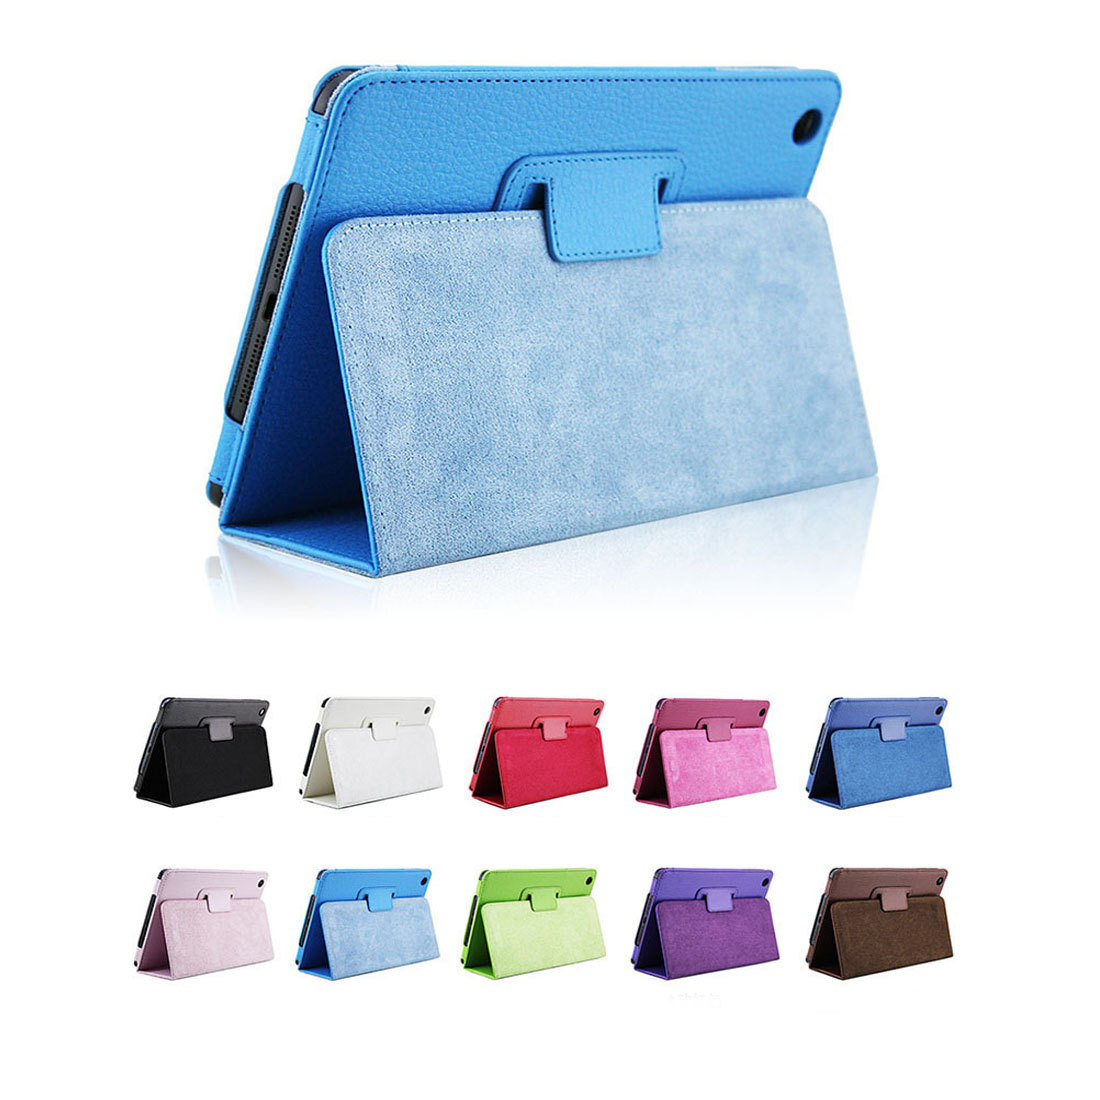 New Fashion Tablet Case for Apple ipad 4 3 2 Colorful Flip Smart Cover PU Leather Stand Flip Screen Protector Cover  2016 new tablet case for apple ipad 4 3 2 flip stand alice in wonderland